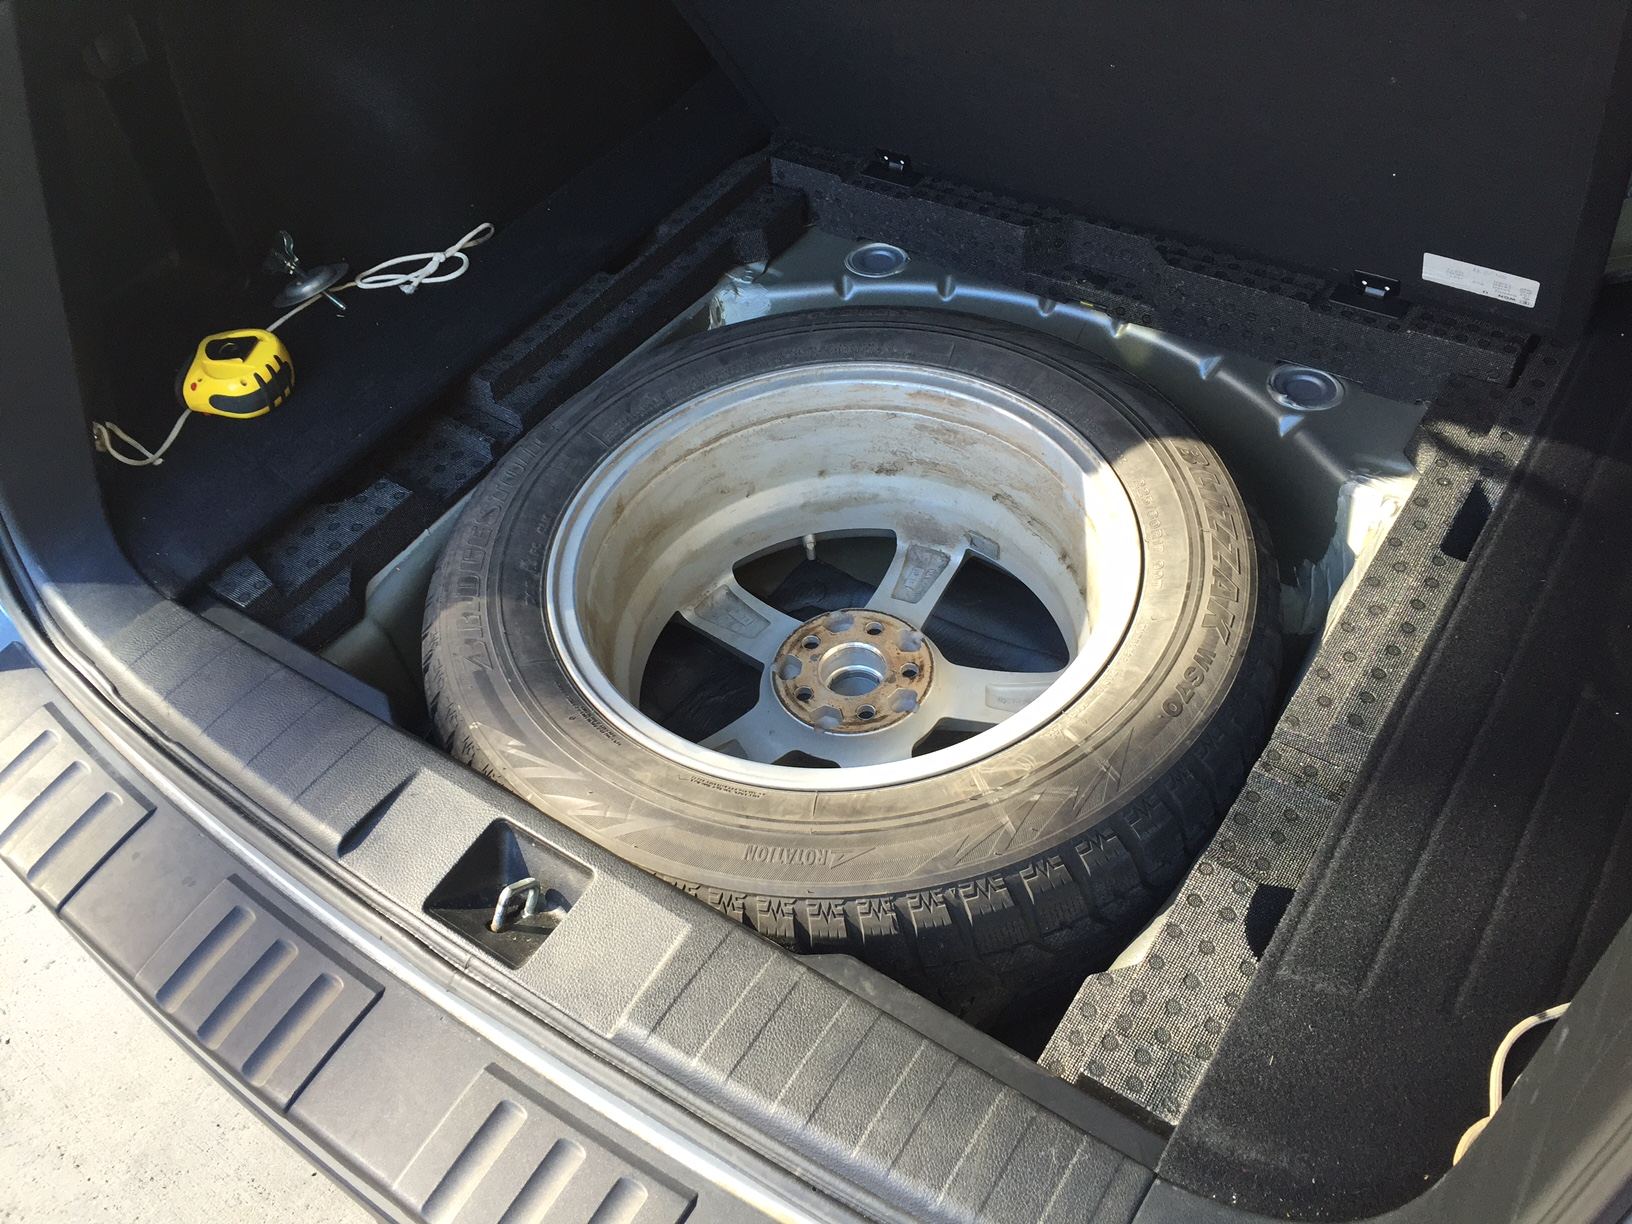 I fit a full size spare in my 2014 Outback! - Subaru Outback ...